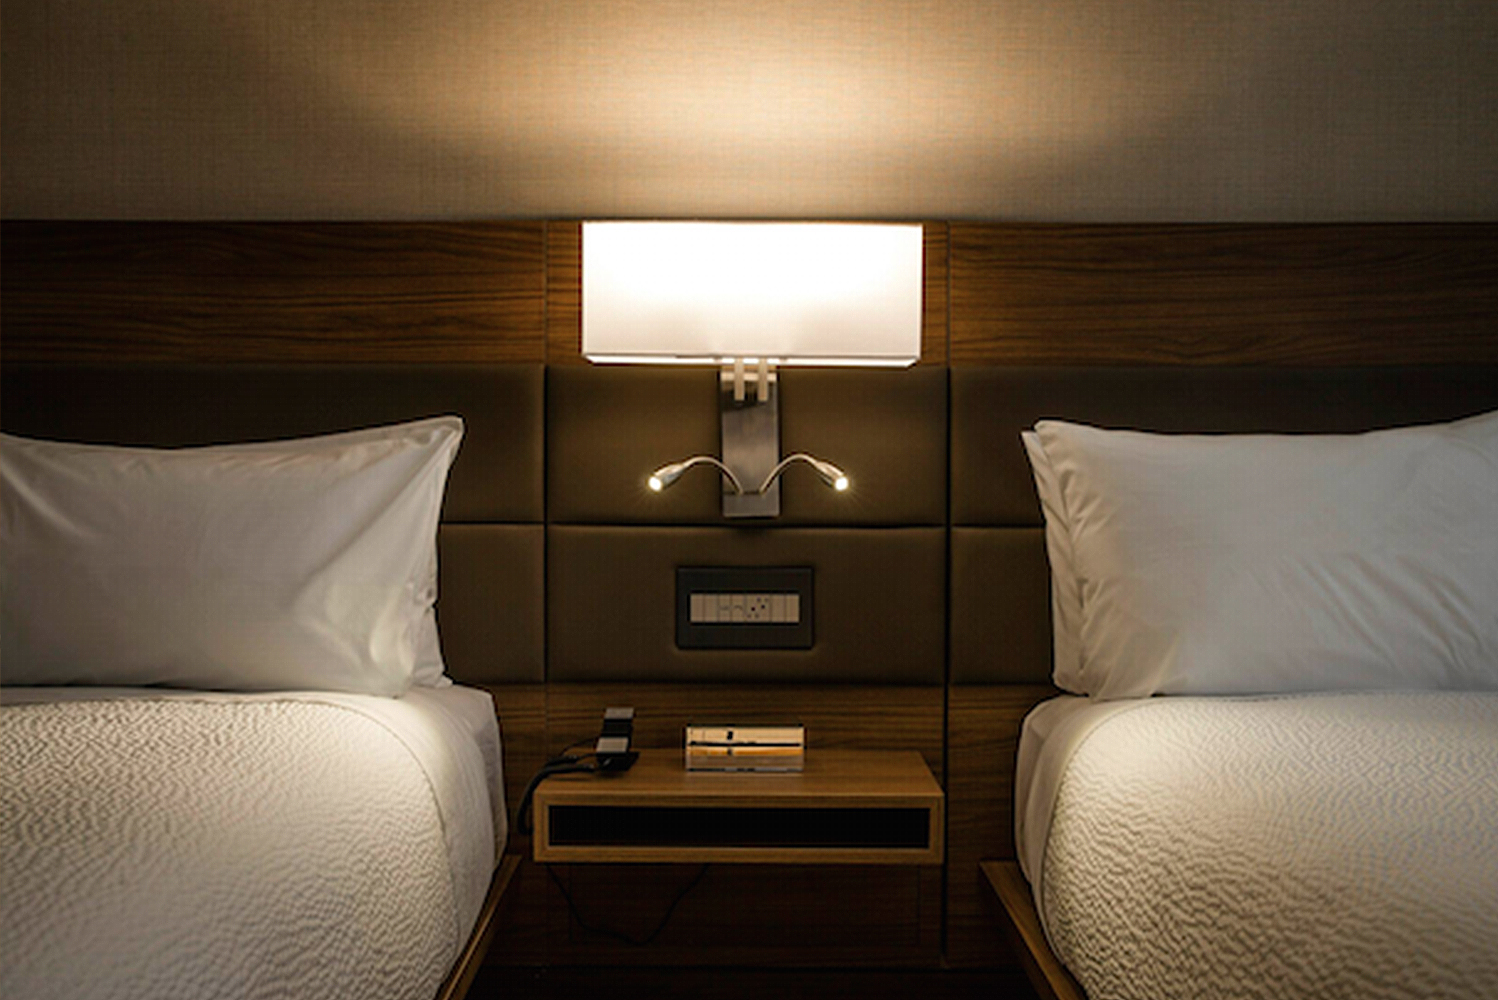 Integration into built-in furniture like headboards, night stands or lobby seating is possible.